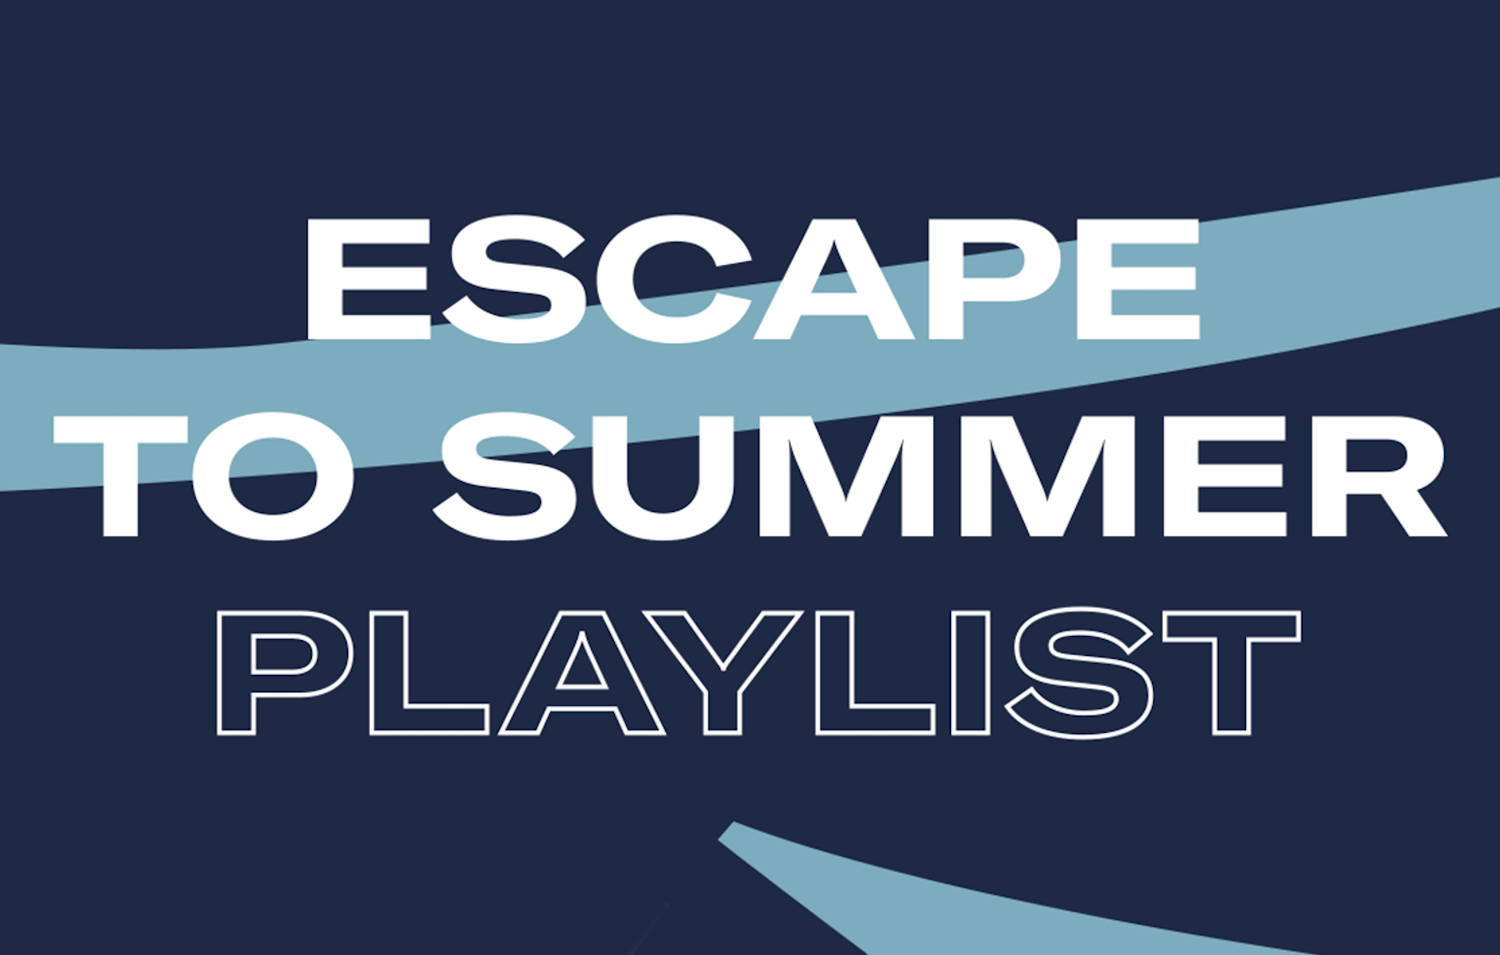 Escape To Summer Playlist